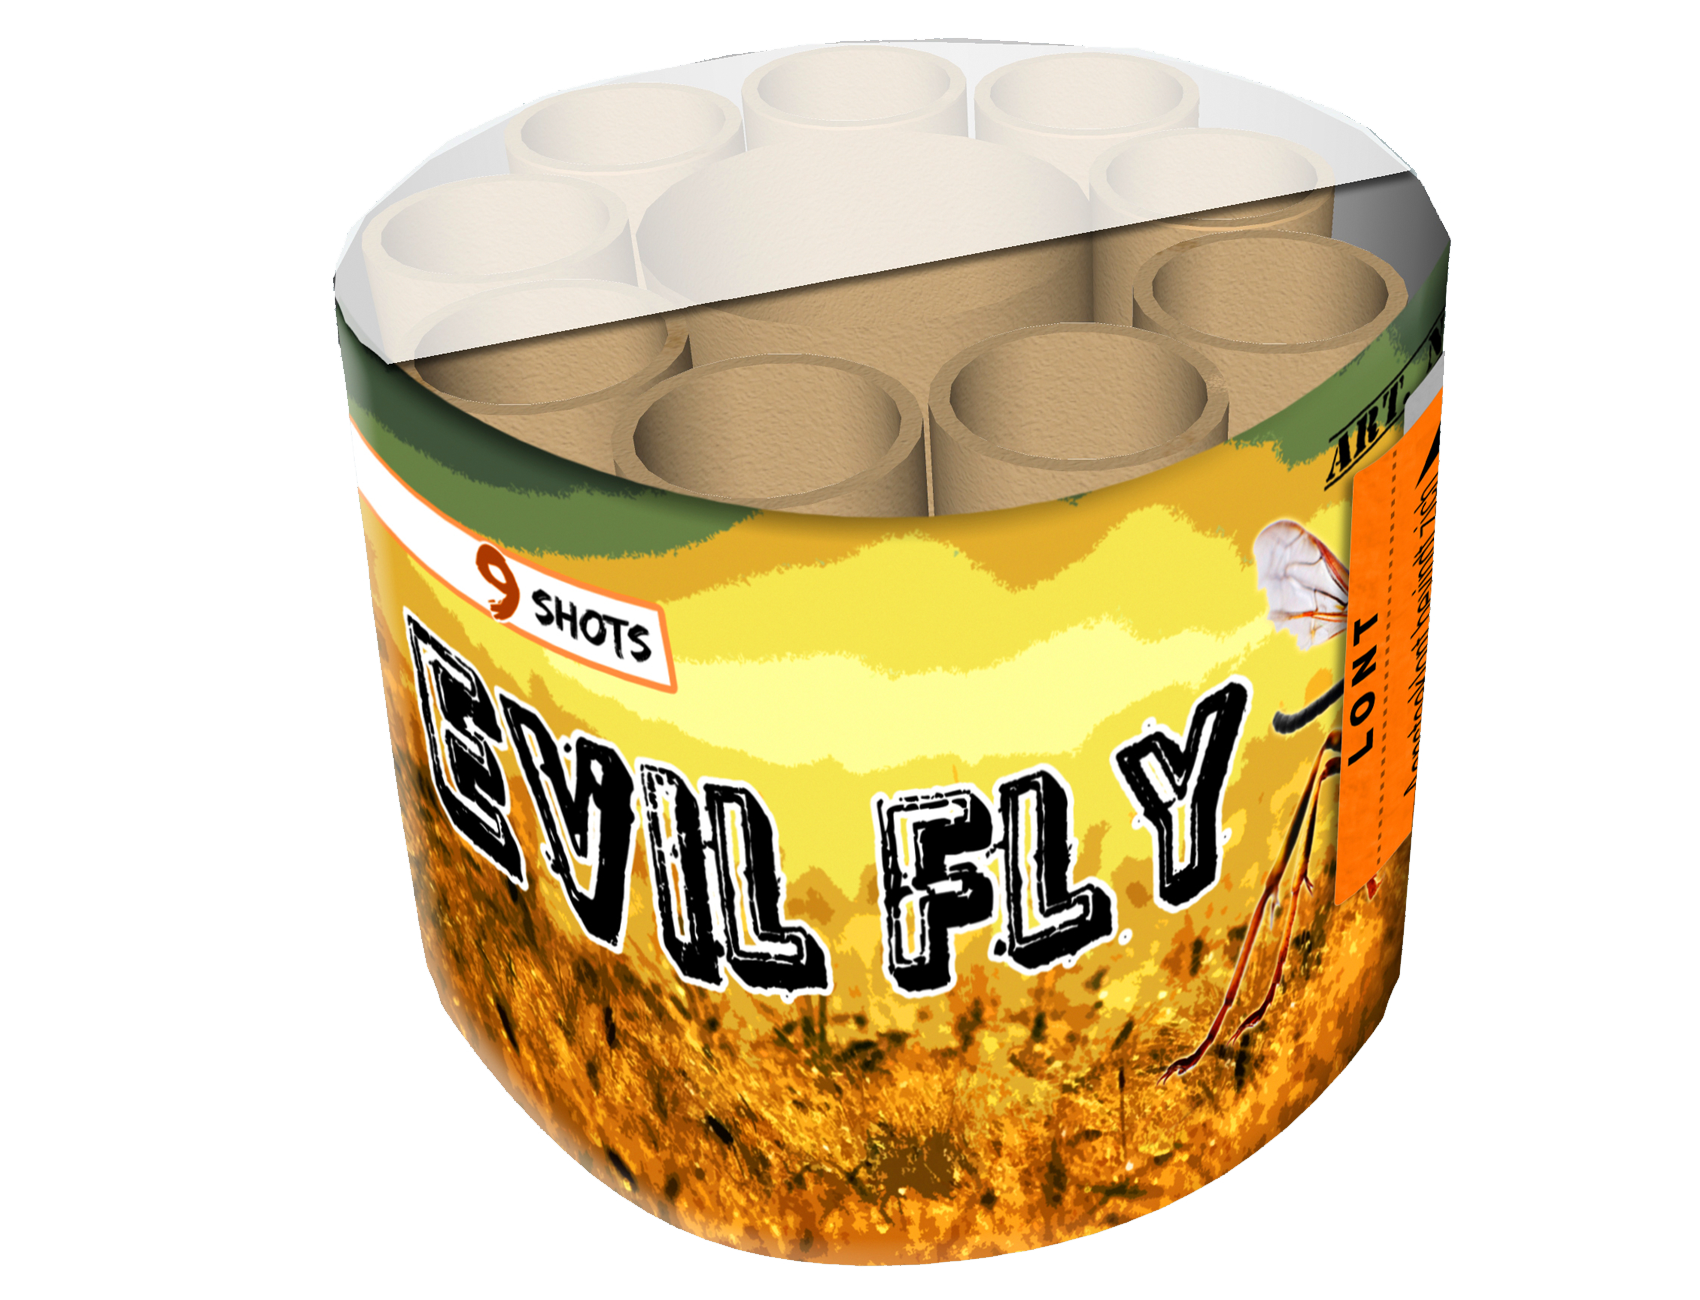 EVEL FLY